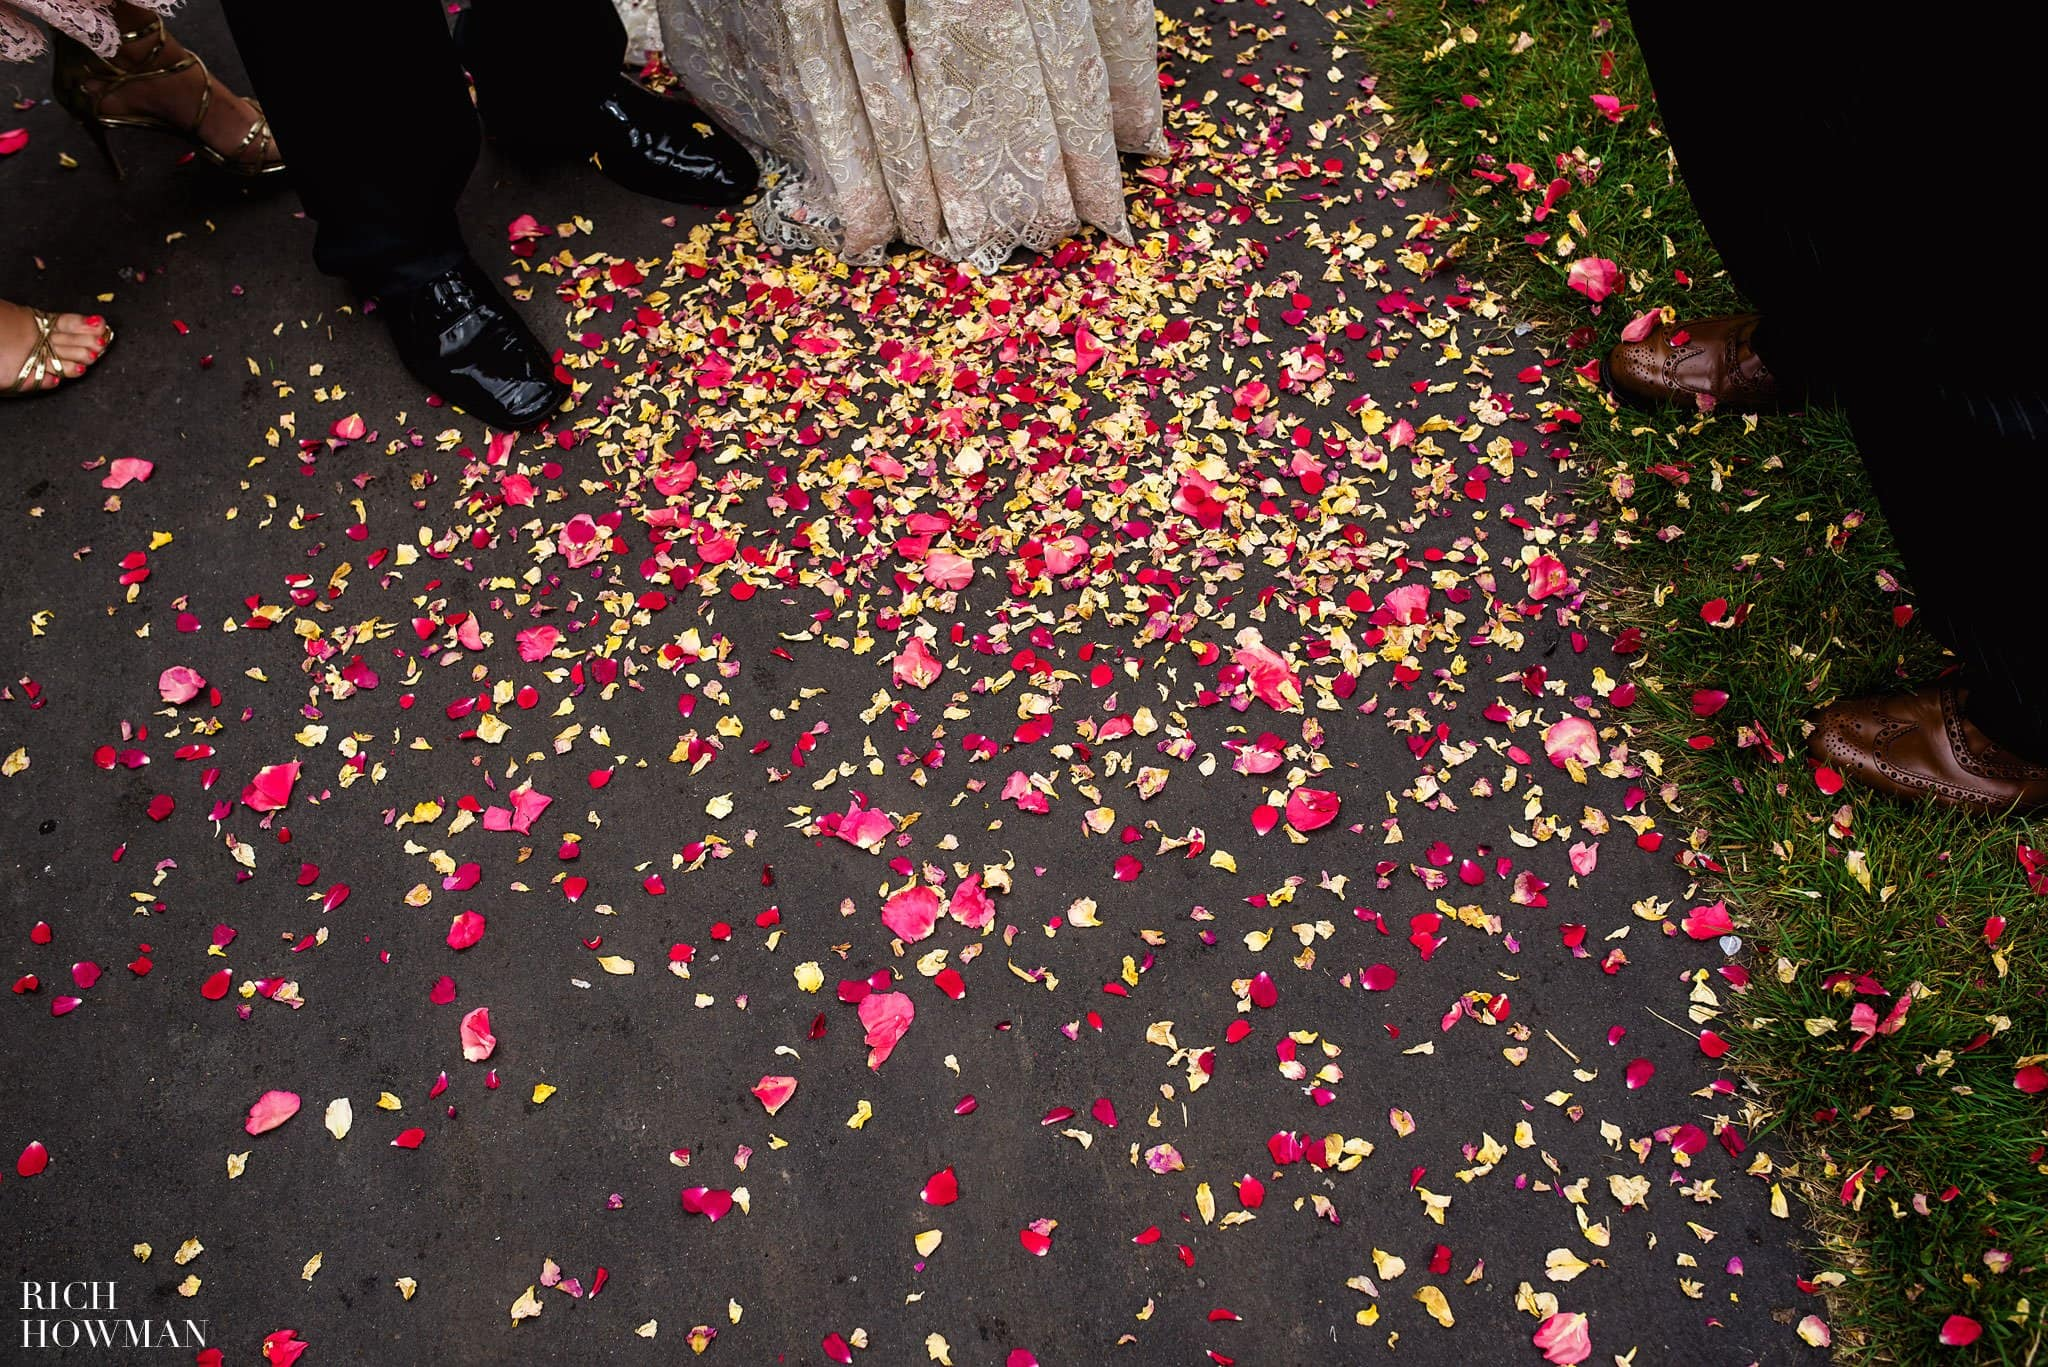 Pile of confetti on the floor outside the church